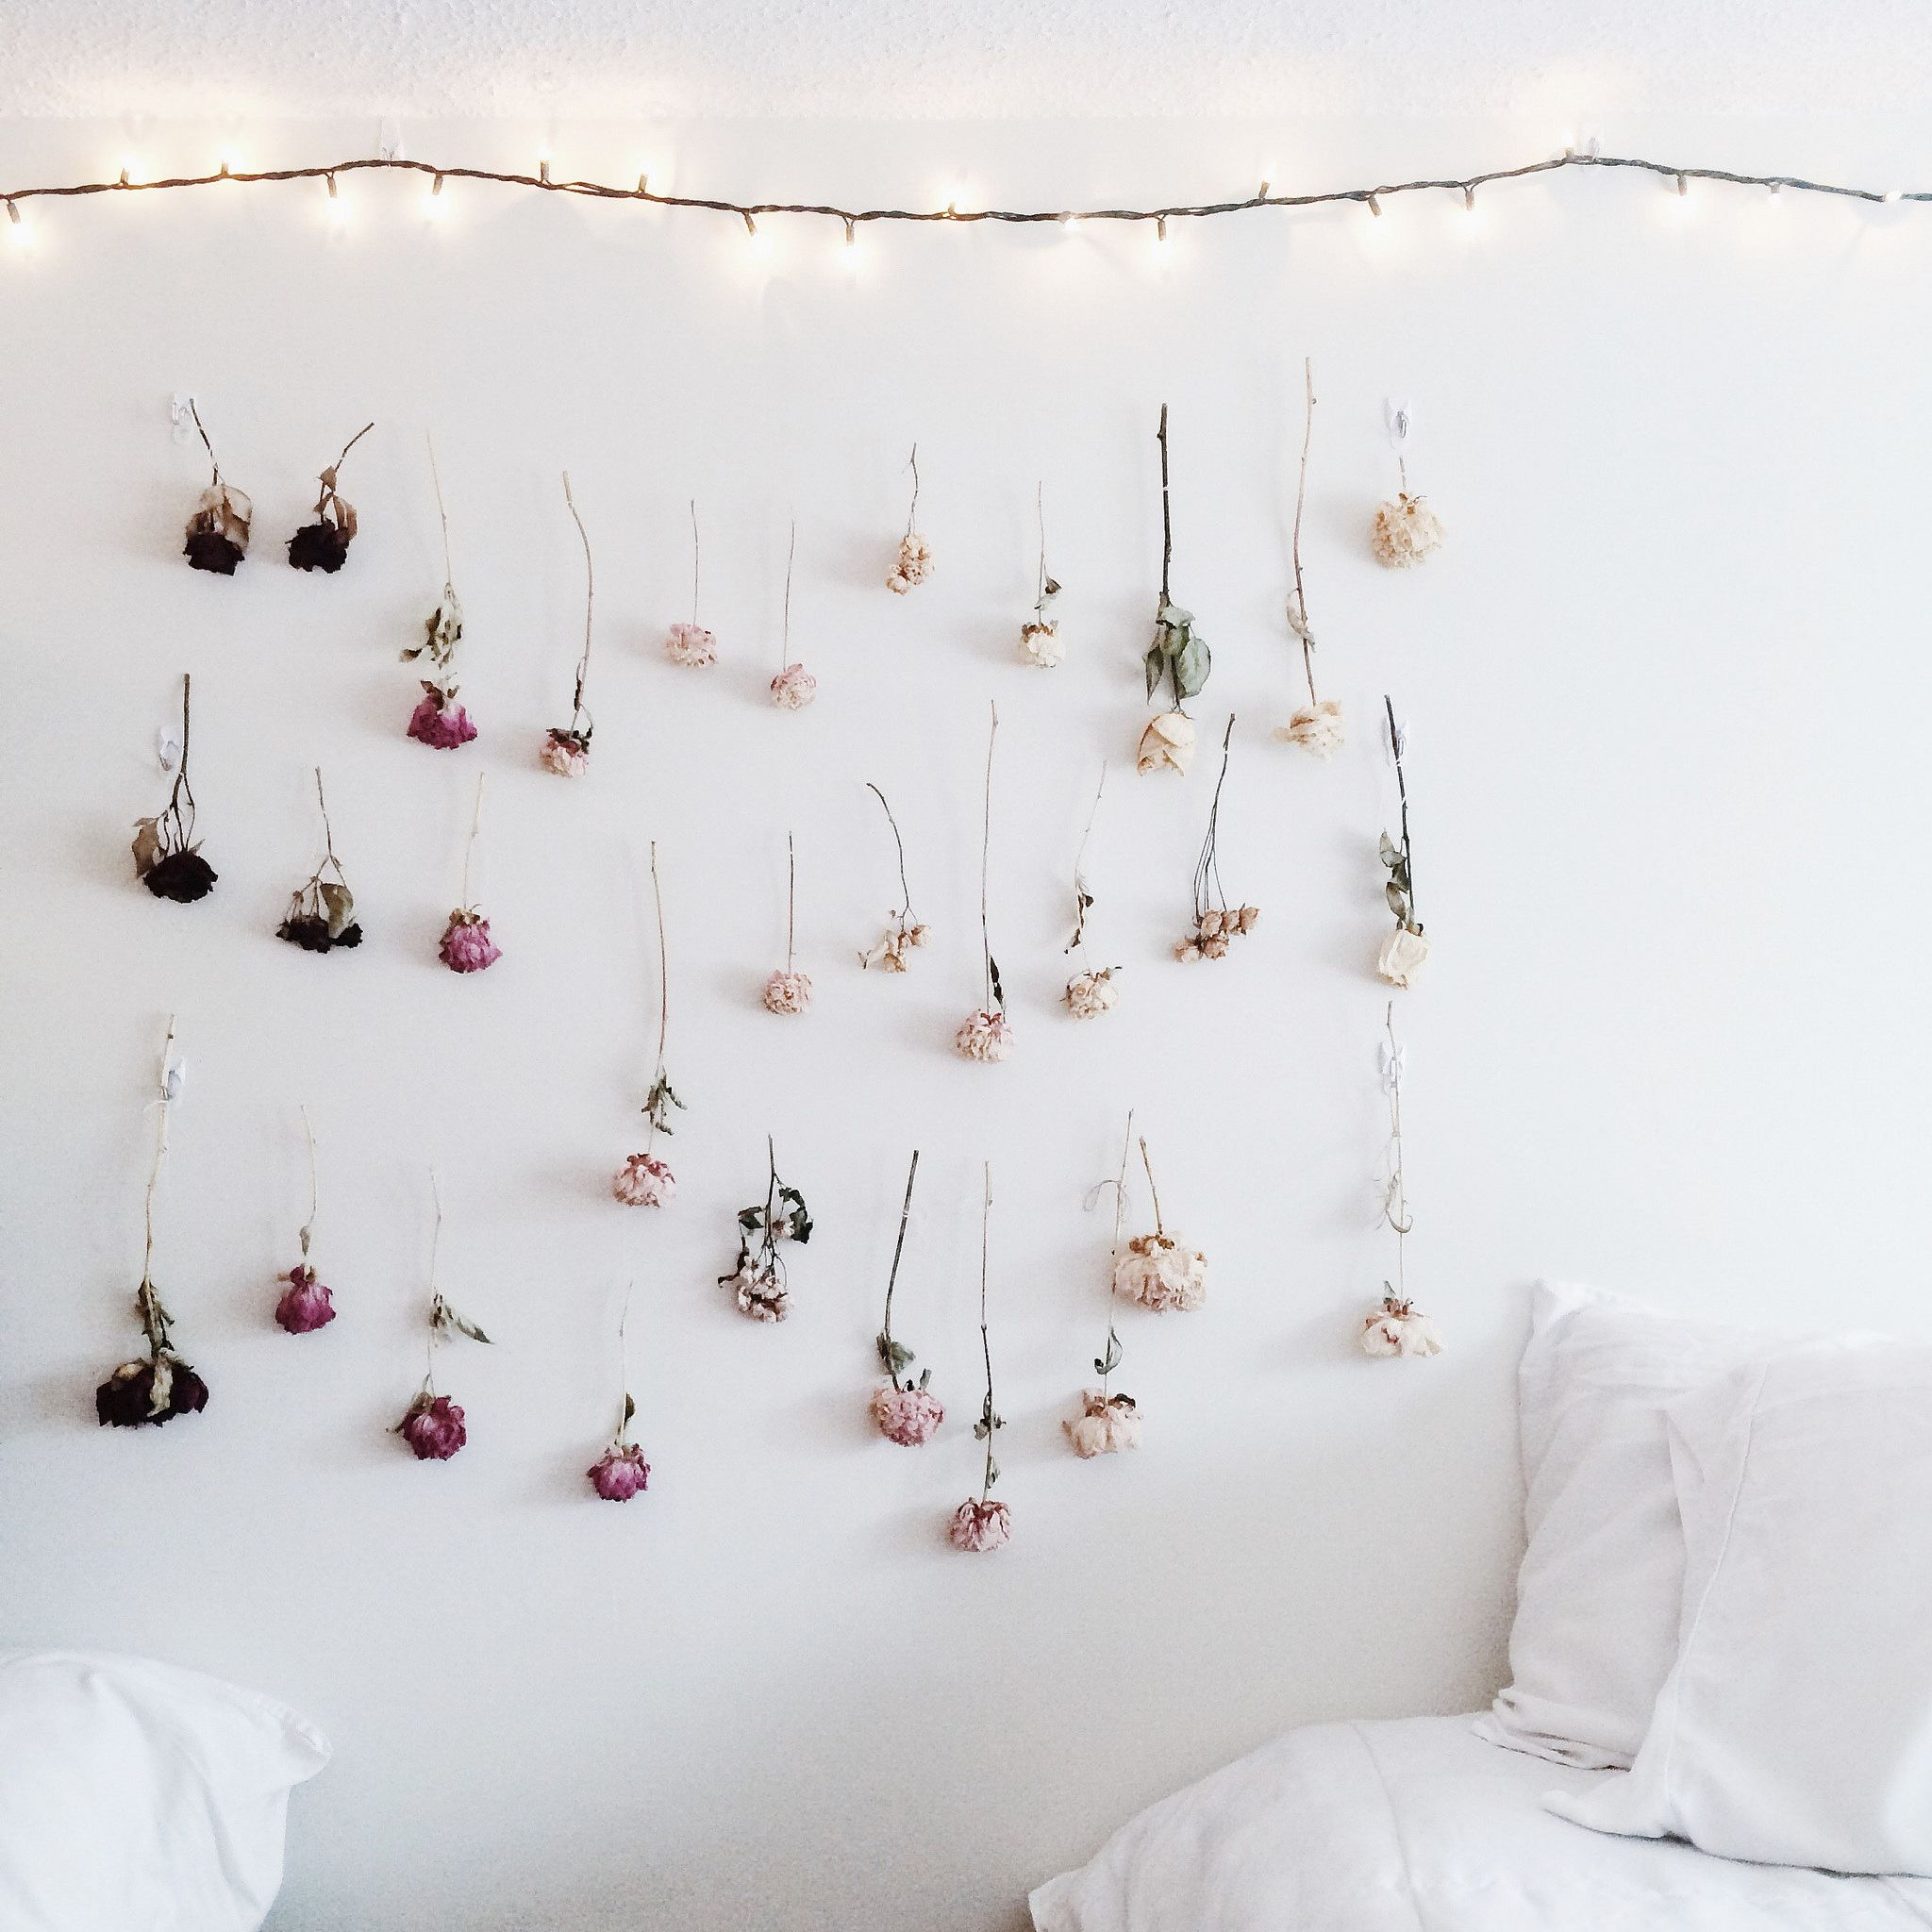 How To Make Your Own Ombre Dried Flower Wall On